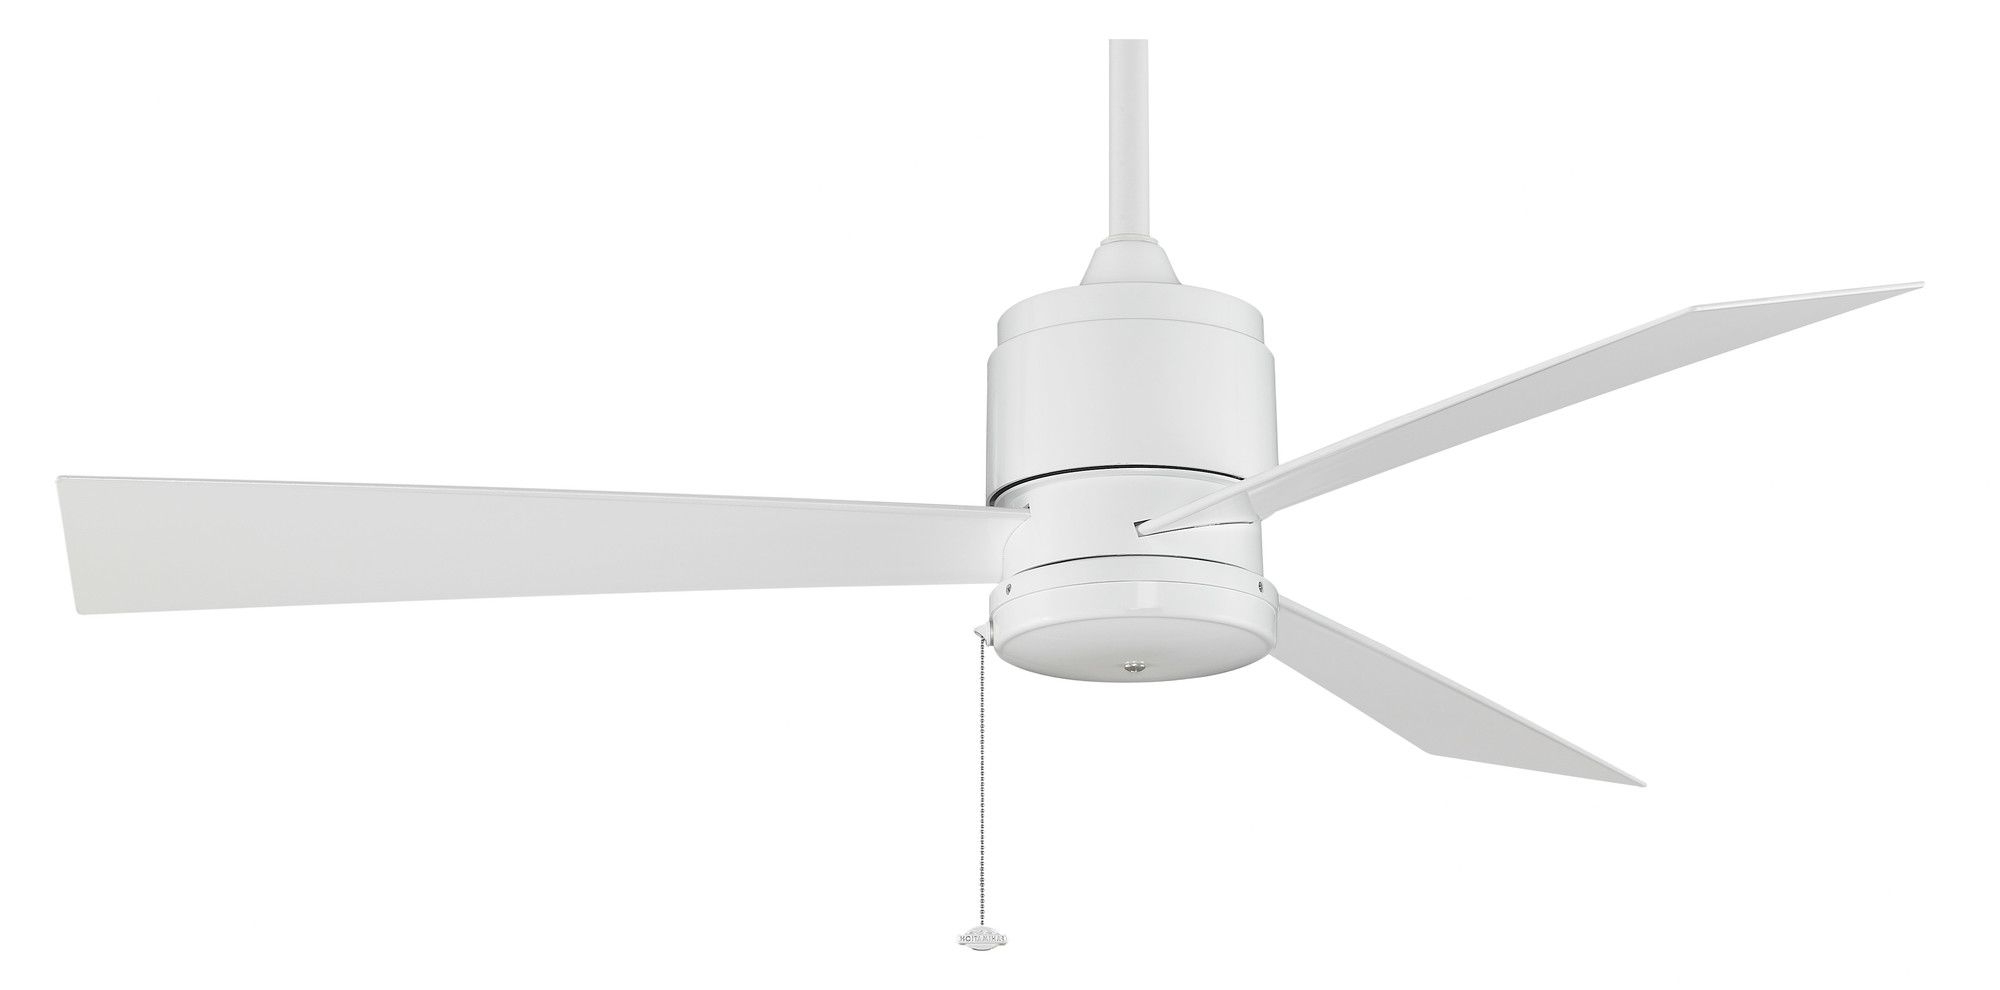 Ceiling Fan Regarding Zonix 3 Blade Ceiling Fans (View 14 of 20)